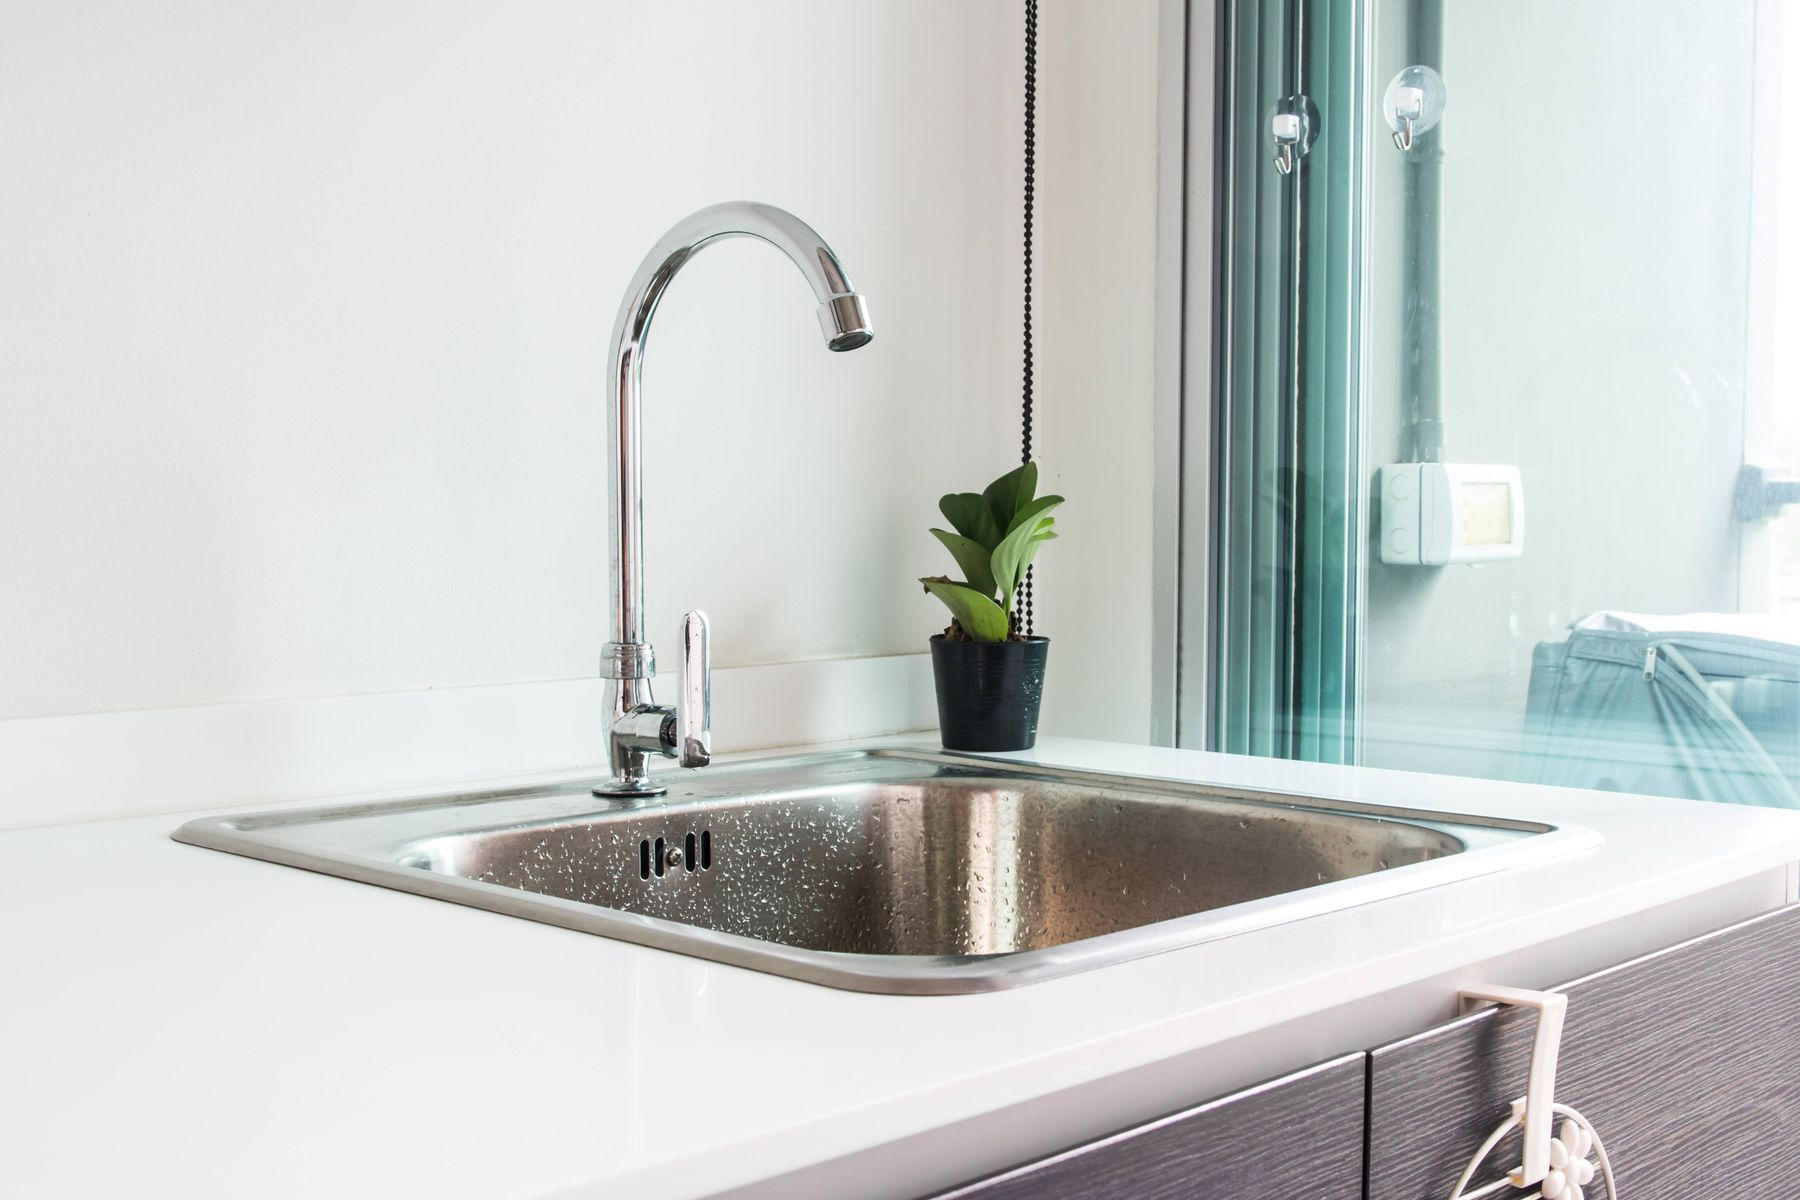 Does your kitchen sink smell bad all the time? Check out this simple solution to your problem